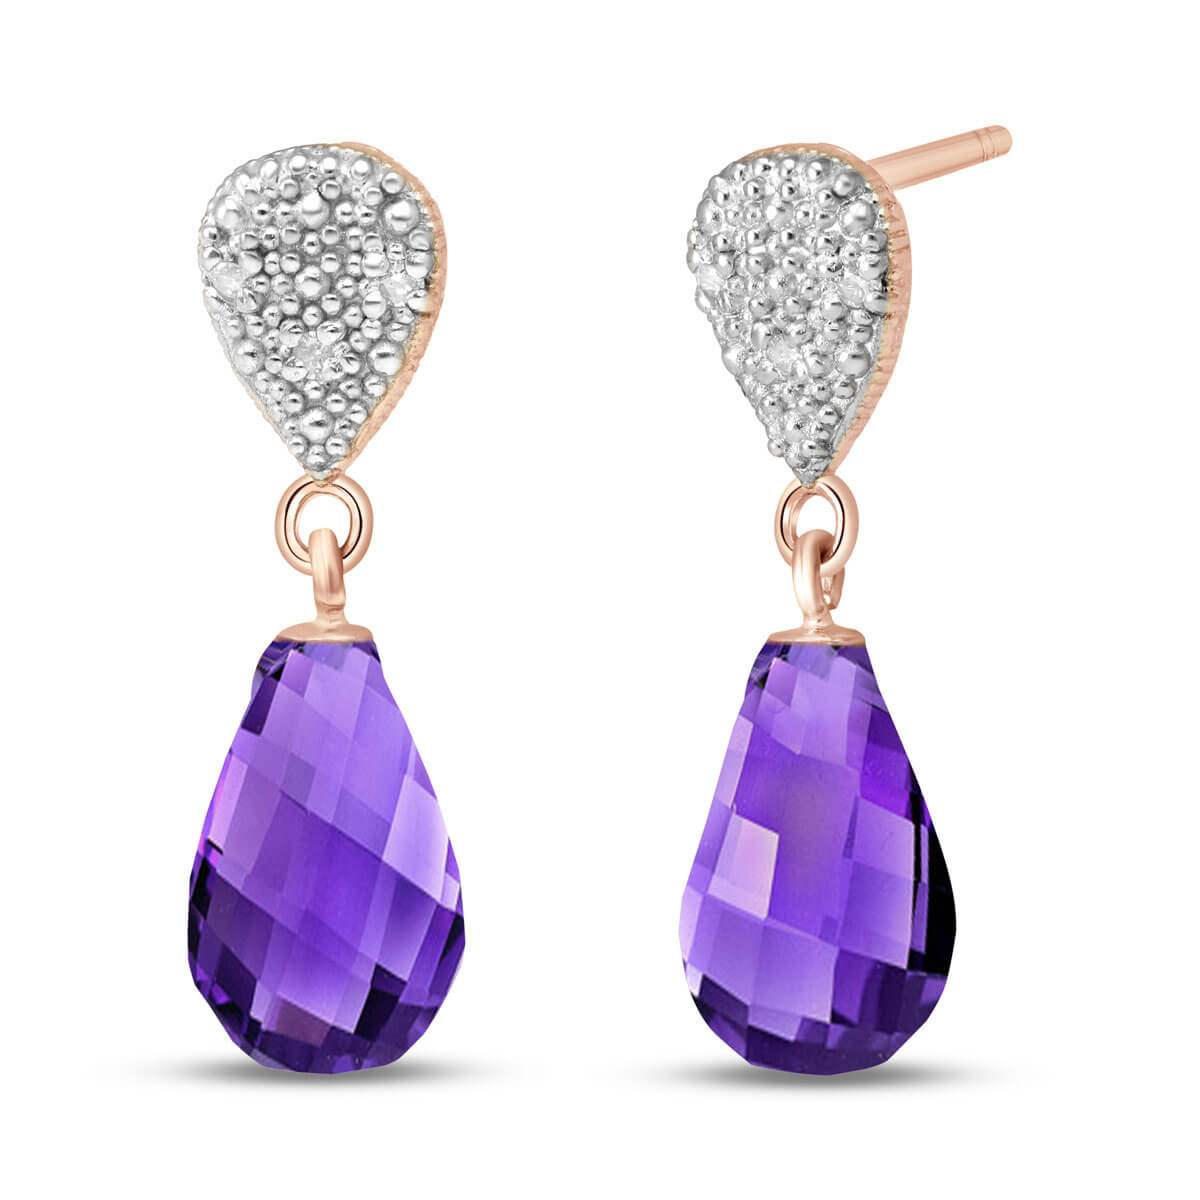 Amethyst & Diamond Droplet Earrings in 9ct Rose Gold